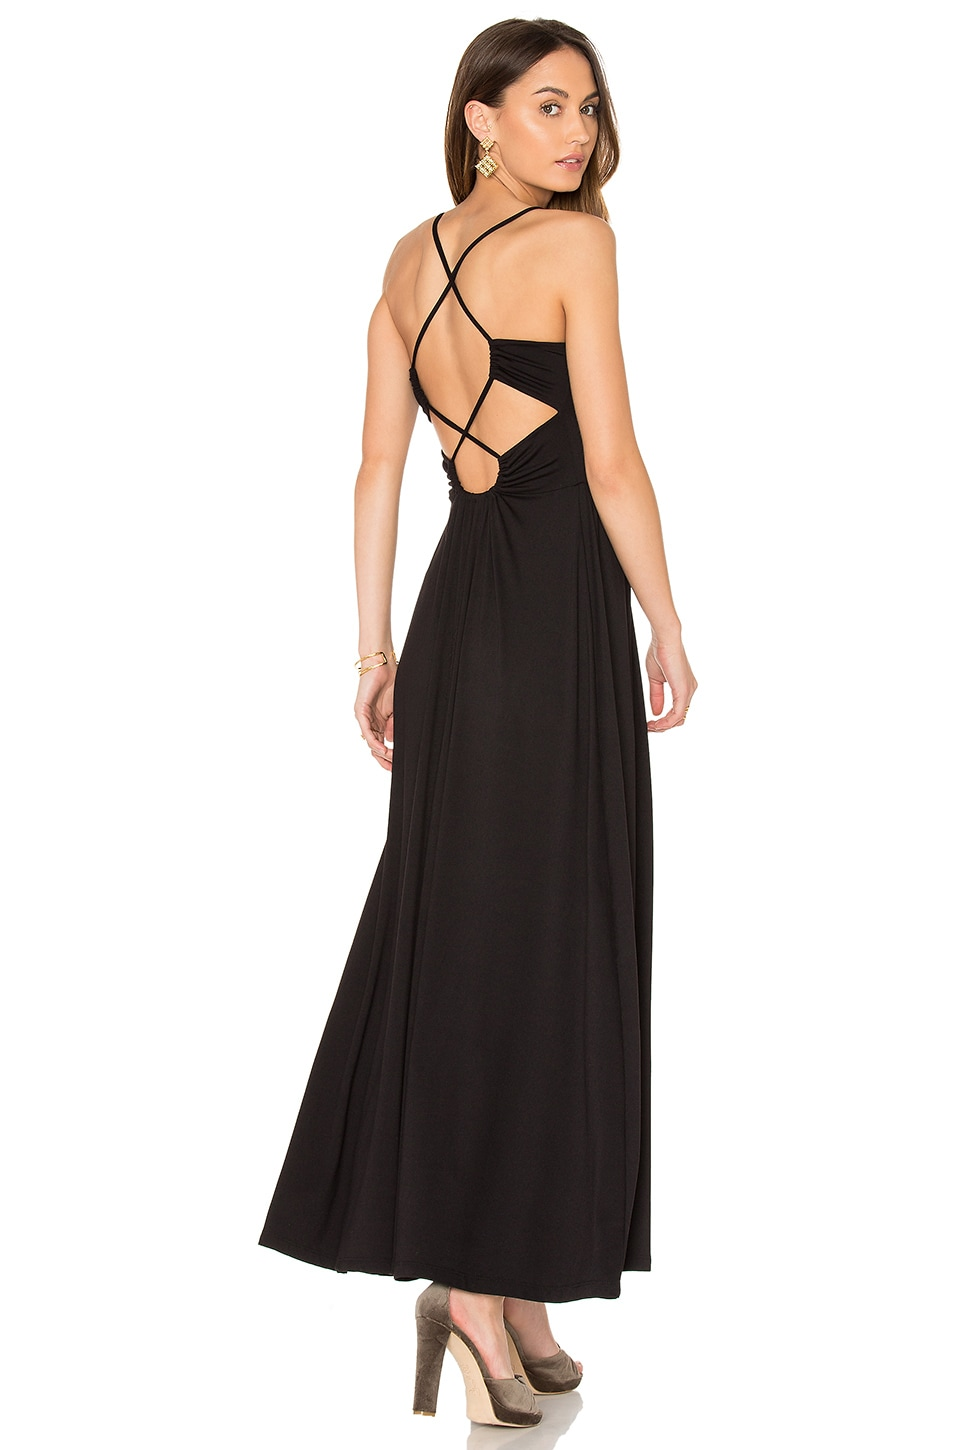 Susana Monaco Phaedra Maxi Dress in Black